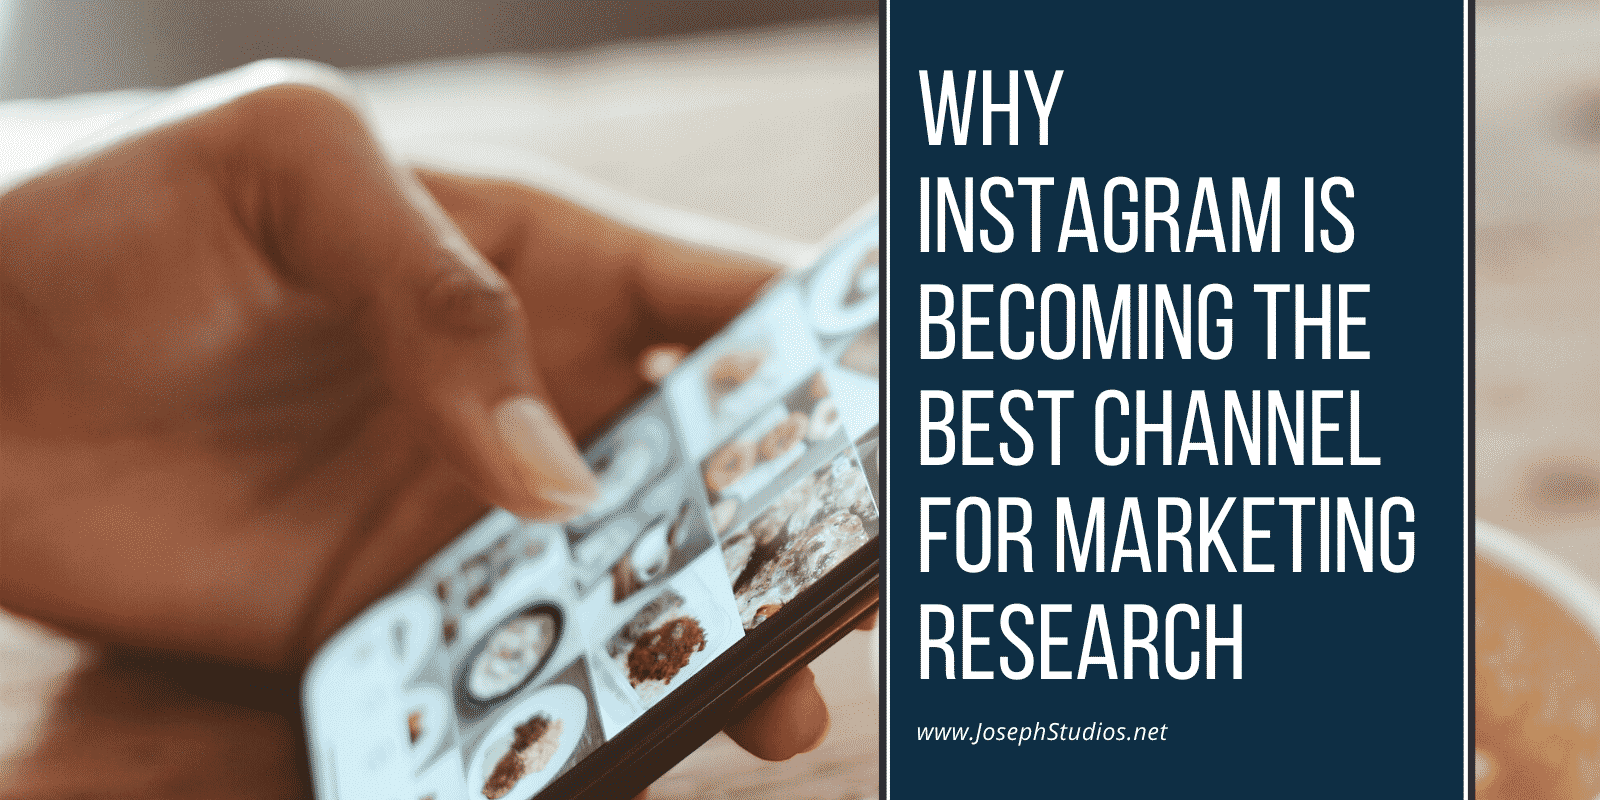 Why Instagram is becoming the best channel for marketing research